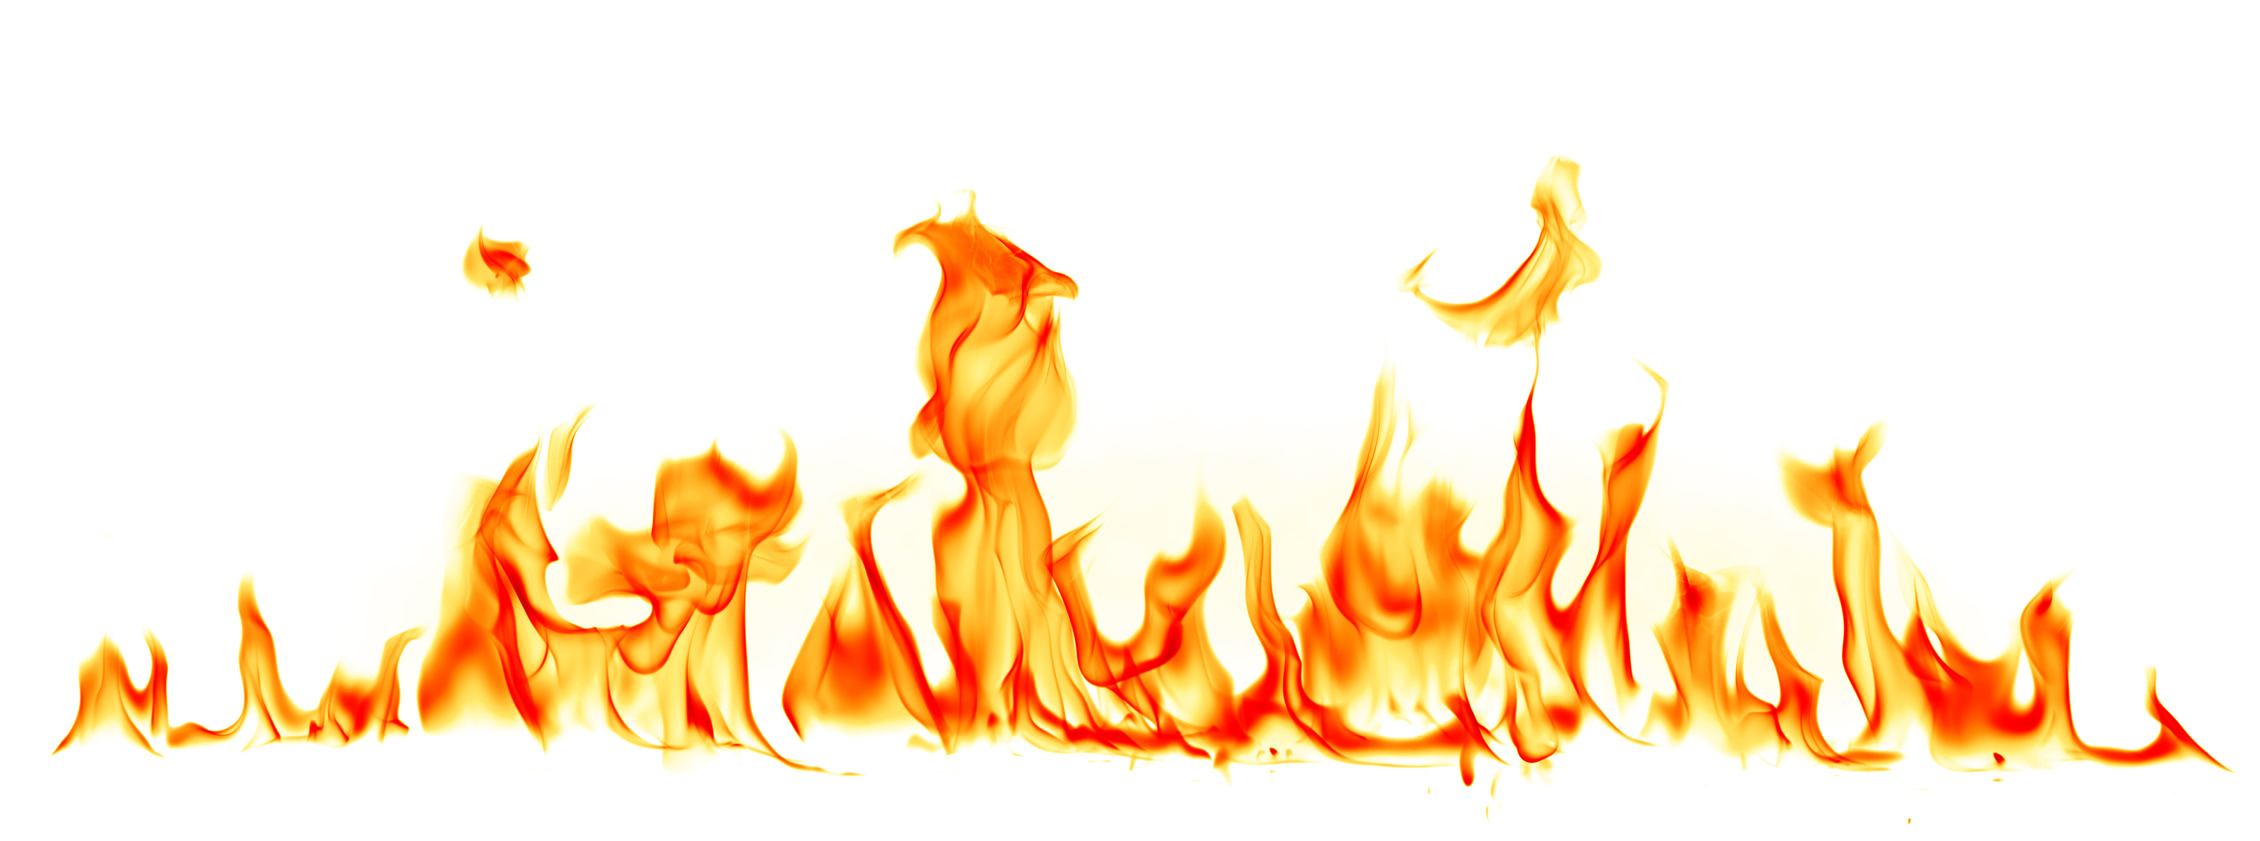 Free fire cliparts border. Clipart flames white background